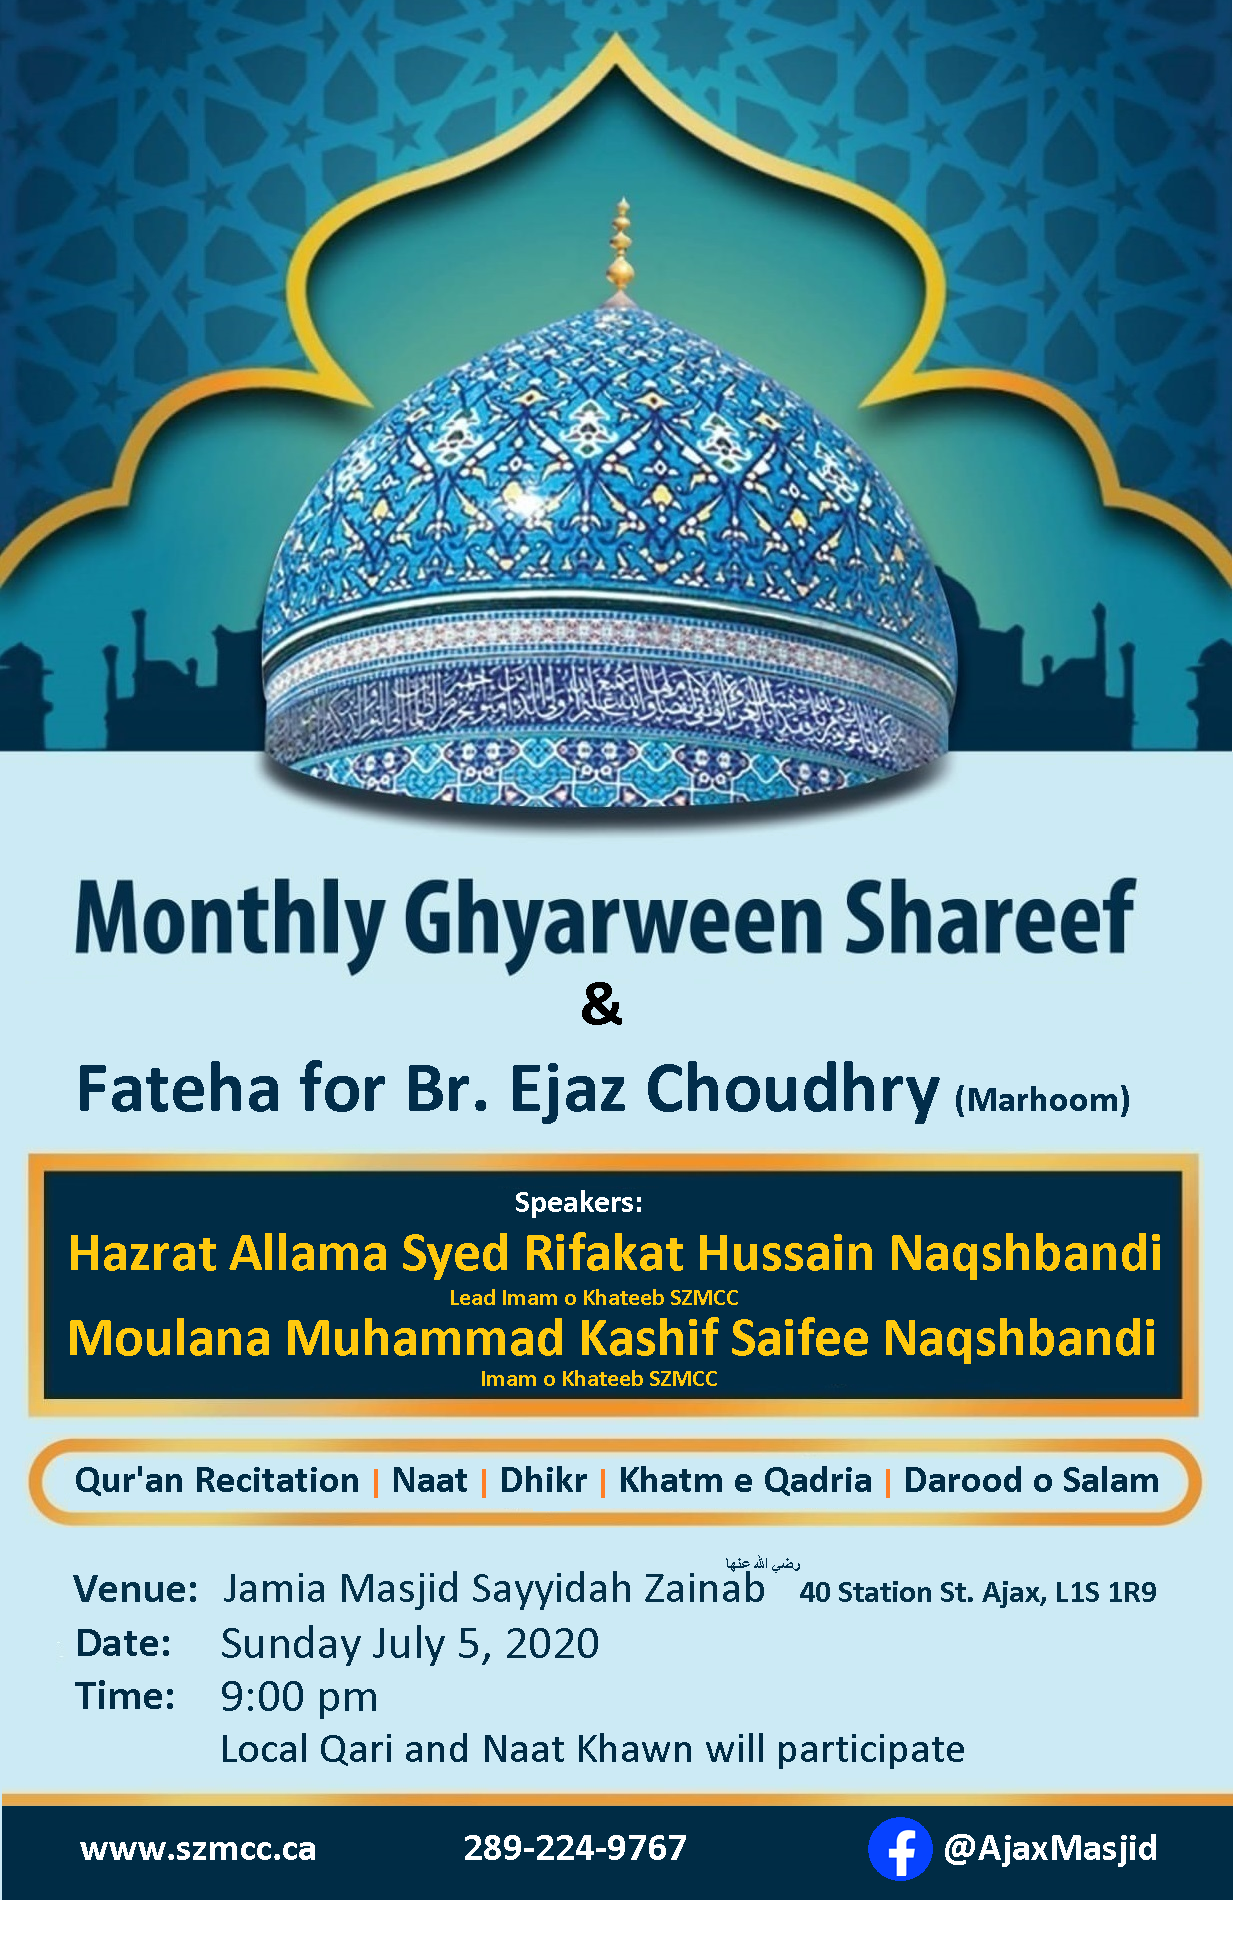 Monthly Ghyarween Shareef & Fateha for Br. Ejaz Choudhry (Marhoom)